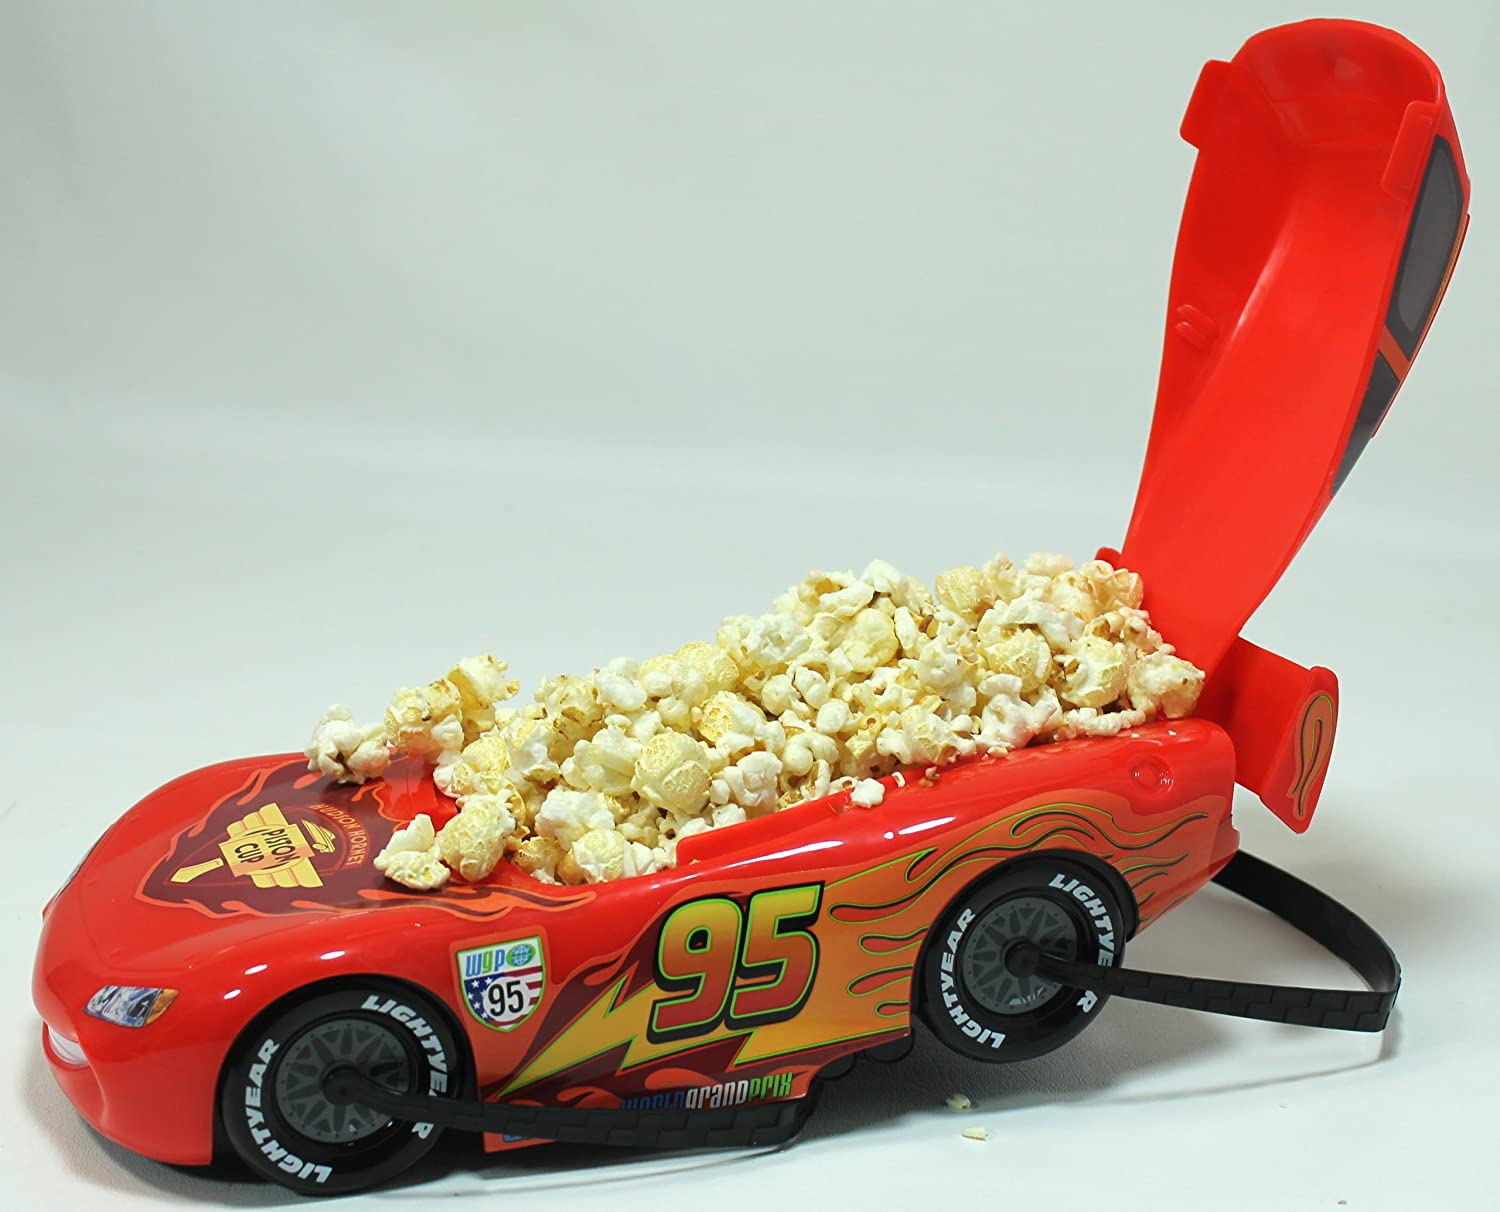 Disney Parks Cars Land Lightning McQueen Popcorn//Snack Bucket Disney Parks Exclusive /& Limited Availability